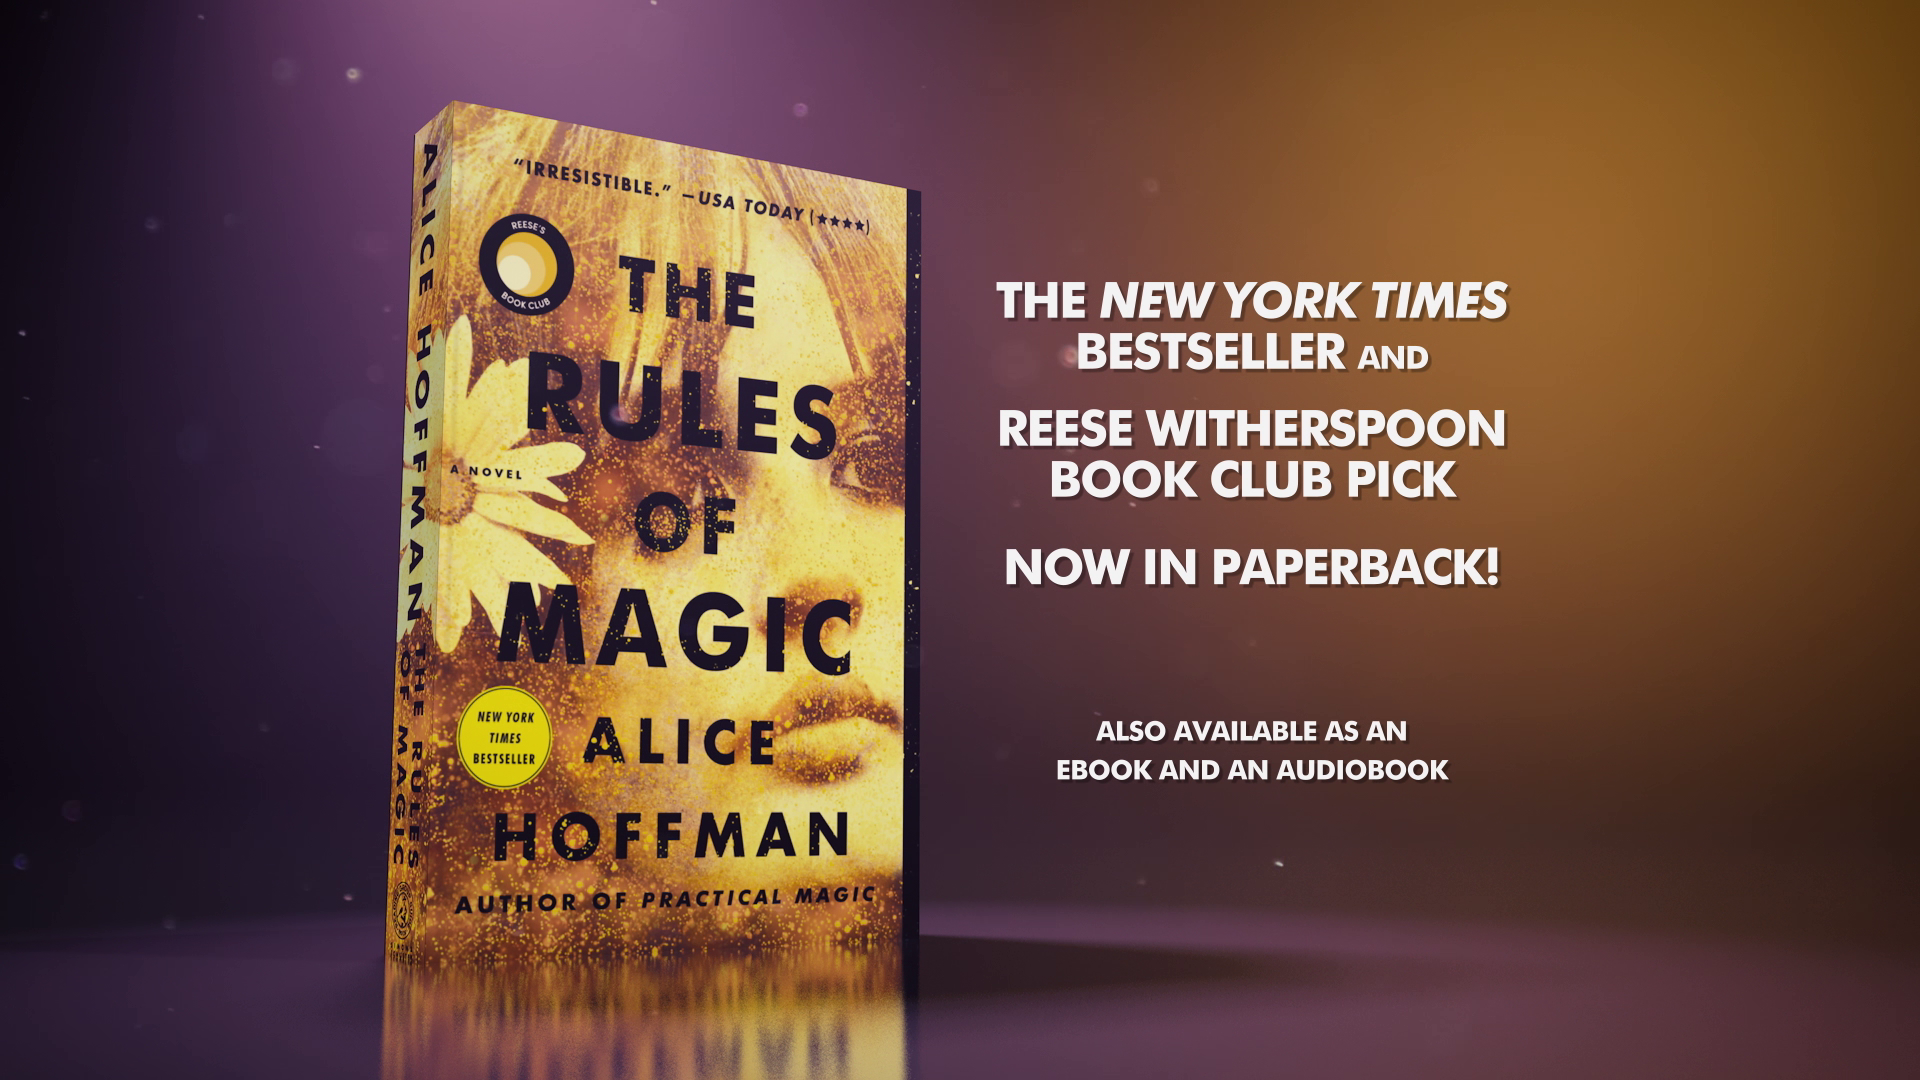 THE RULES OF MAGIC Now in Paperback